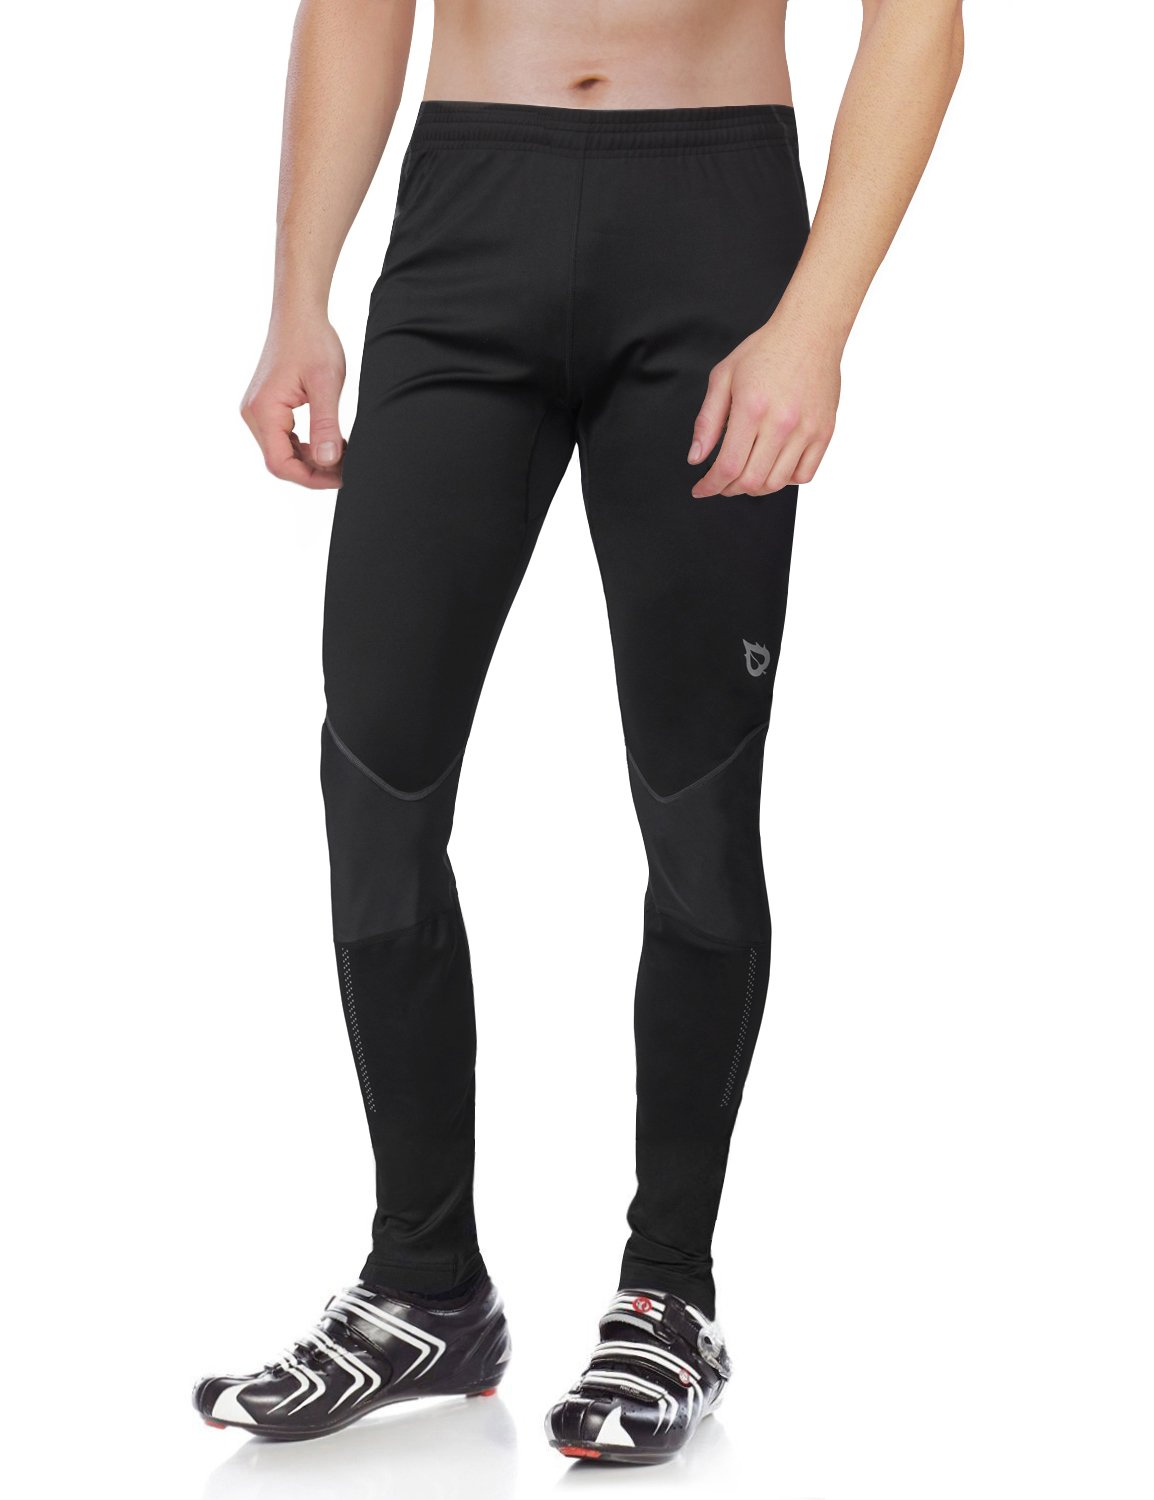 Baleaf Men's Windproof Thermal Running Cycling Tight Pants Size XXXL